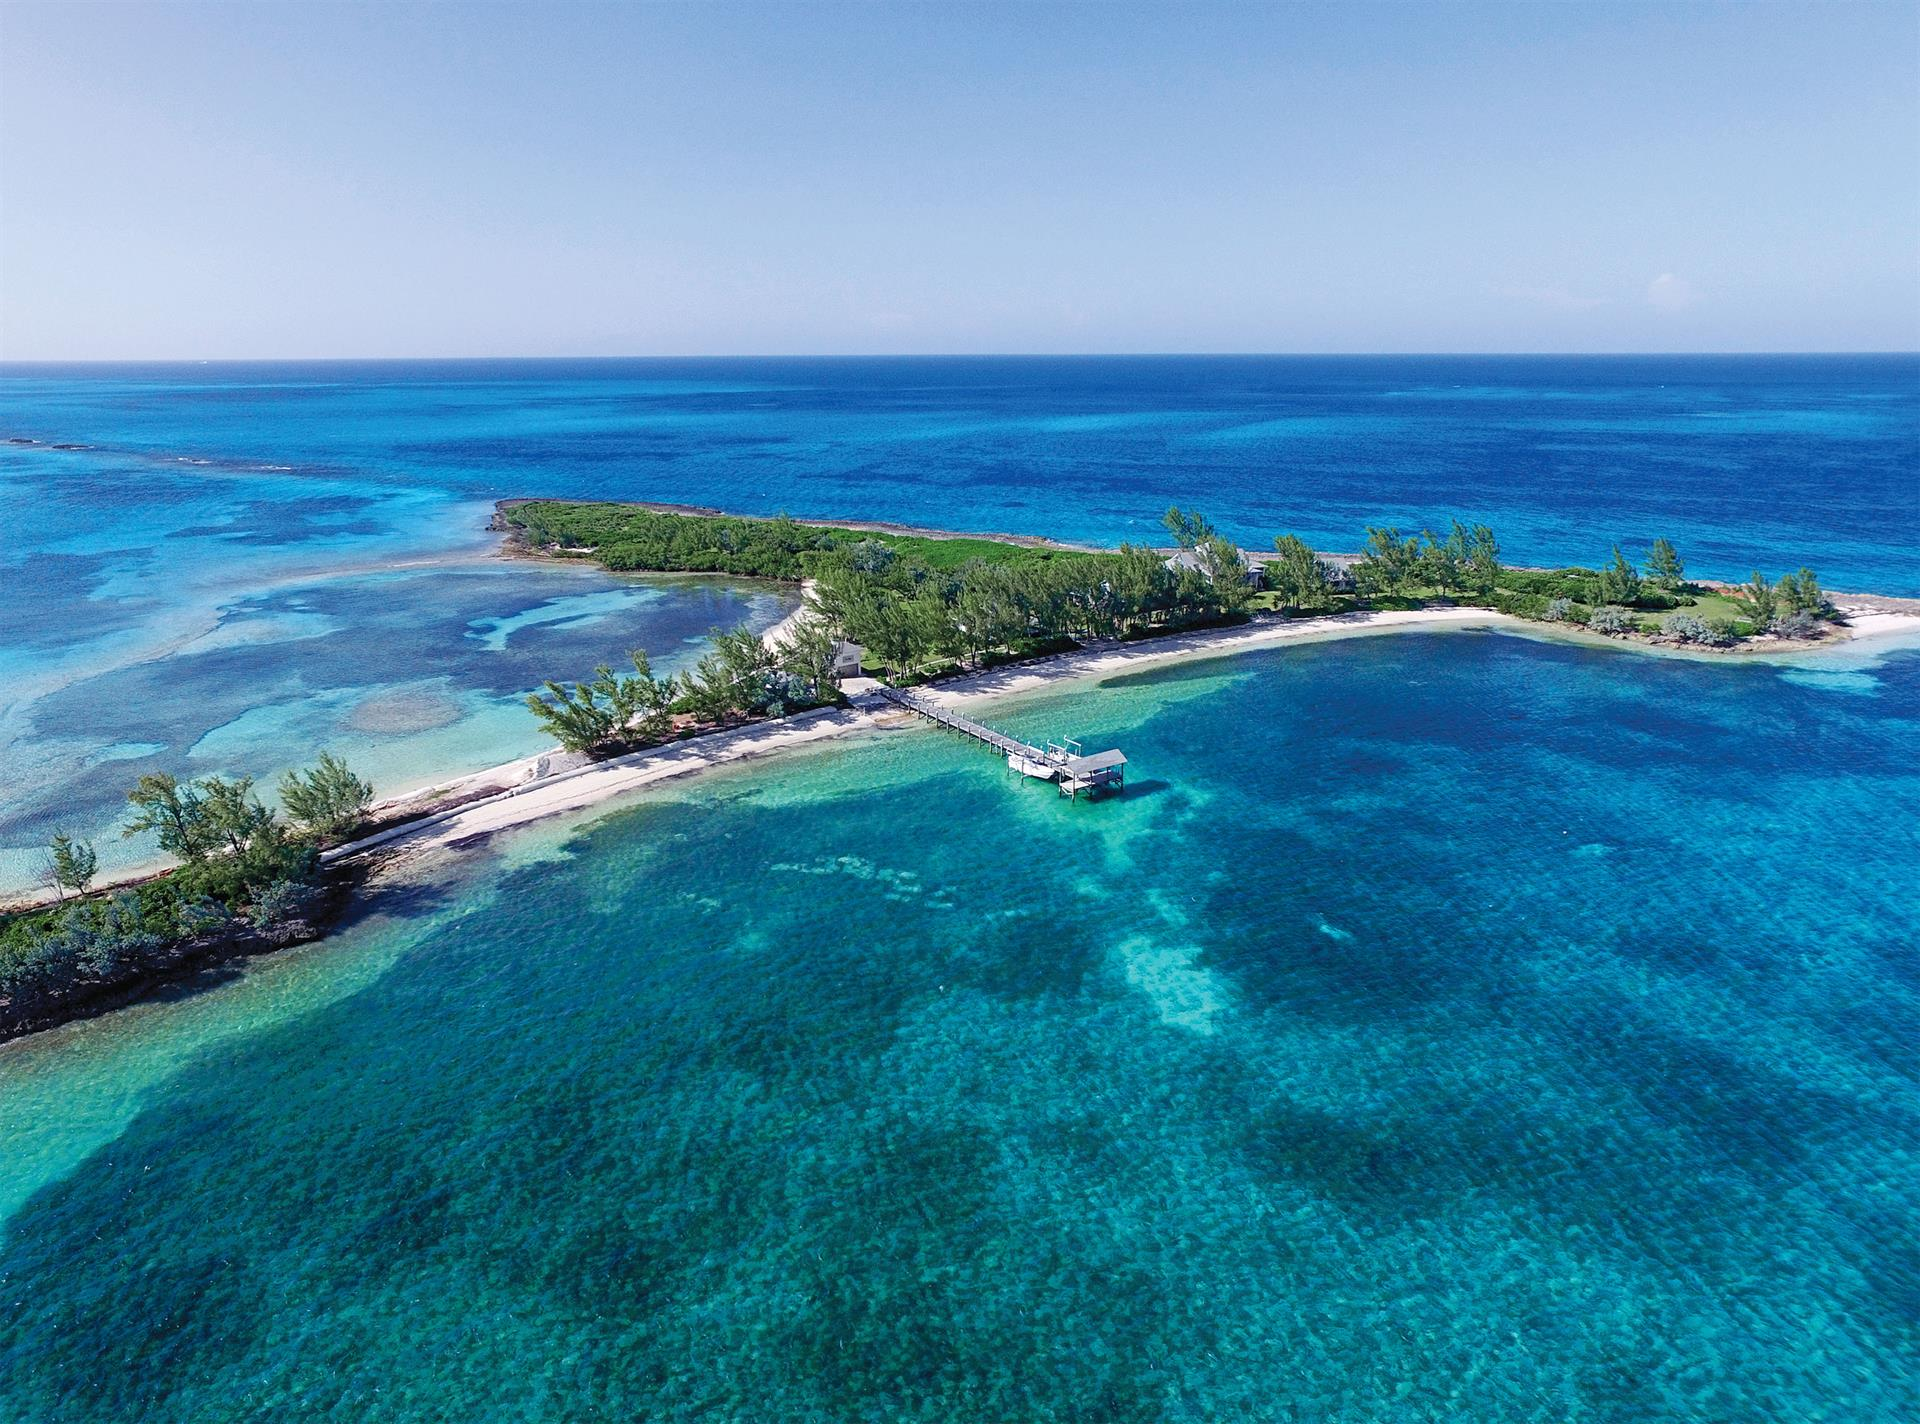 Private Island for Sale at Bonefish Cay, Private Island, Abaco - MLS 29844 Abaco, Bahamas